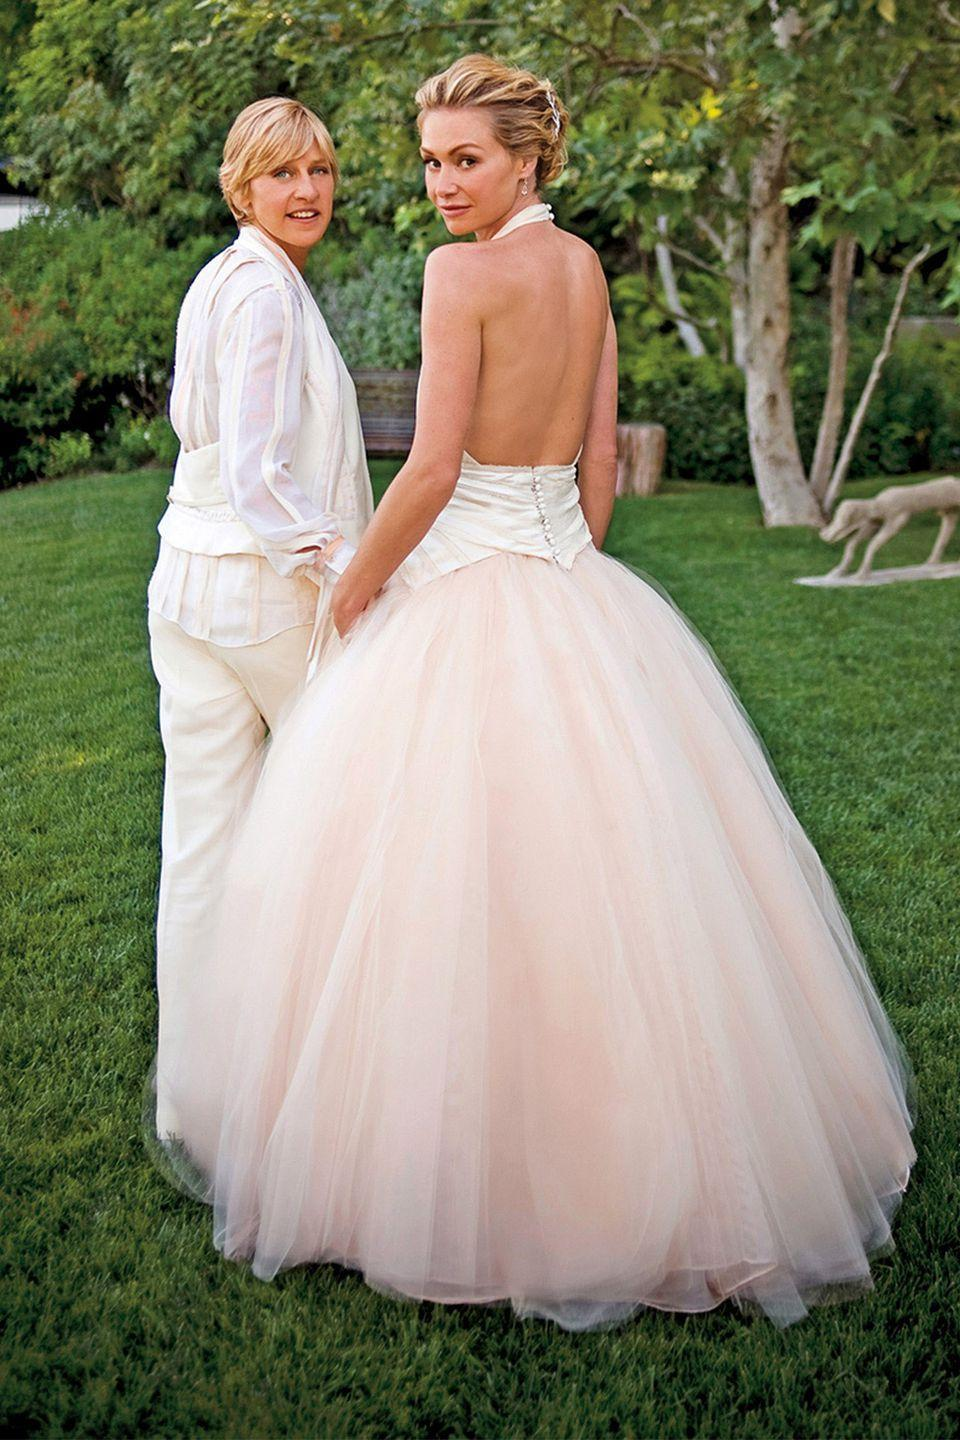 <p>The actress wed Ellen DeGeneres in a blush-pink ballgown with a high halter and cloud-like tulle skirt by Zac Posen. Simultaneously modern and romantic, it was fit for a fairytale.</p>